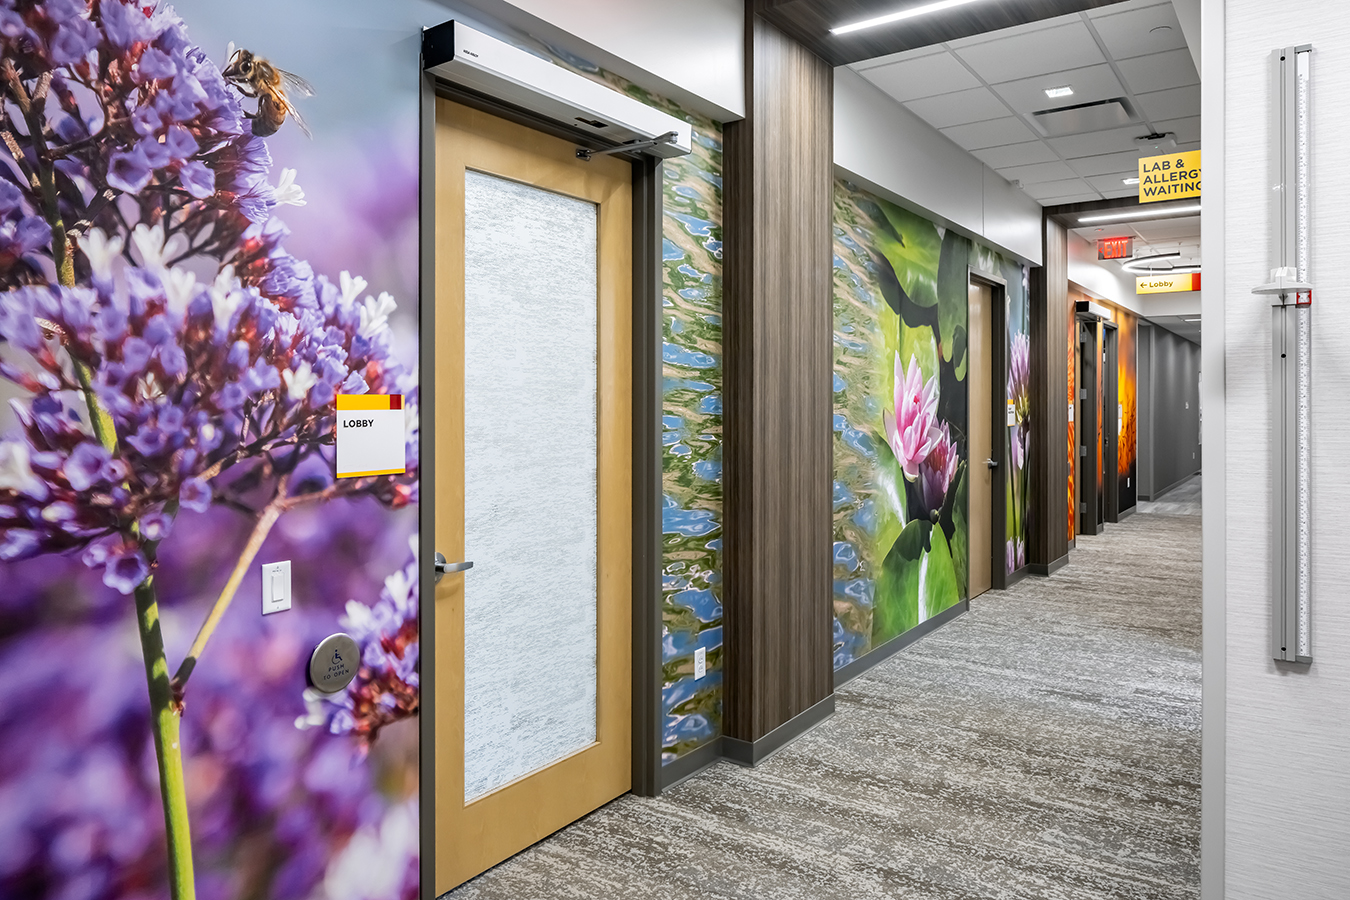 Fairview health services river falls WI Wisconsin BDH Koroseal large scale wallcovering custom color botanical flowers colorful slices graphic mural waiting positive distraction hall hallway corridor hospital art biophilic design wrap